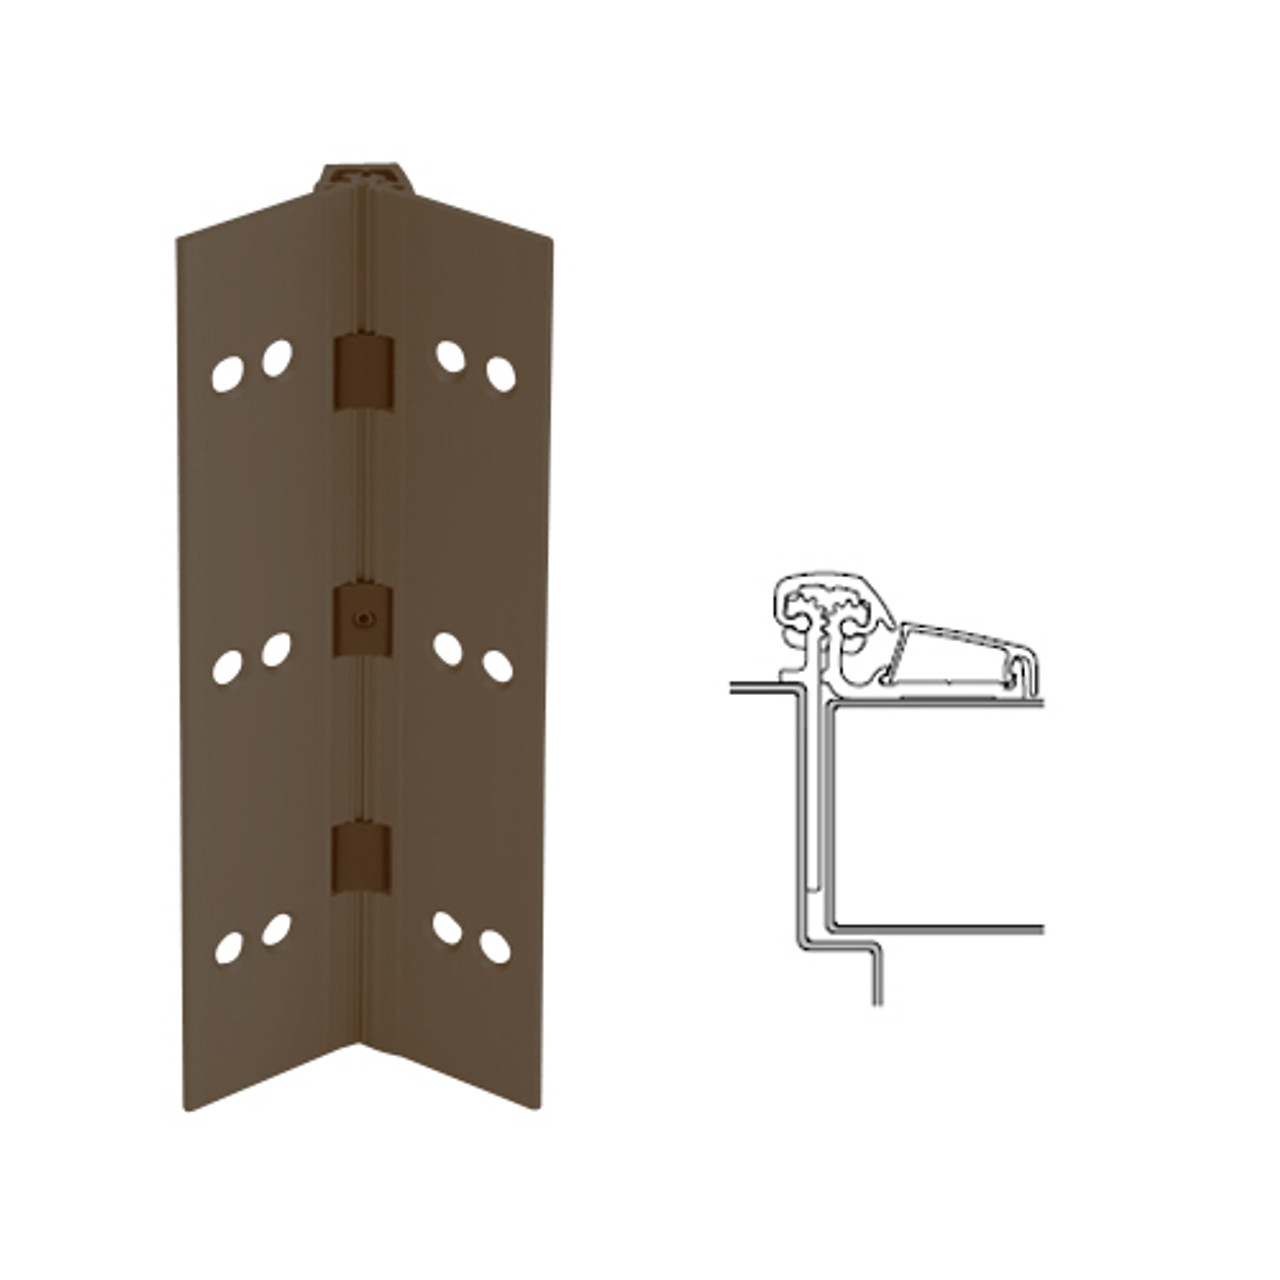 053XY-313AN-120-SECWDWD IVES Adjustable Half Surface Continuous Geared Hinges with Security Screws - Hex Pin Drive in Dark Bronze Anodized